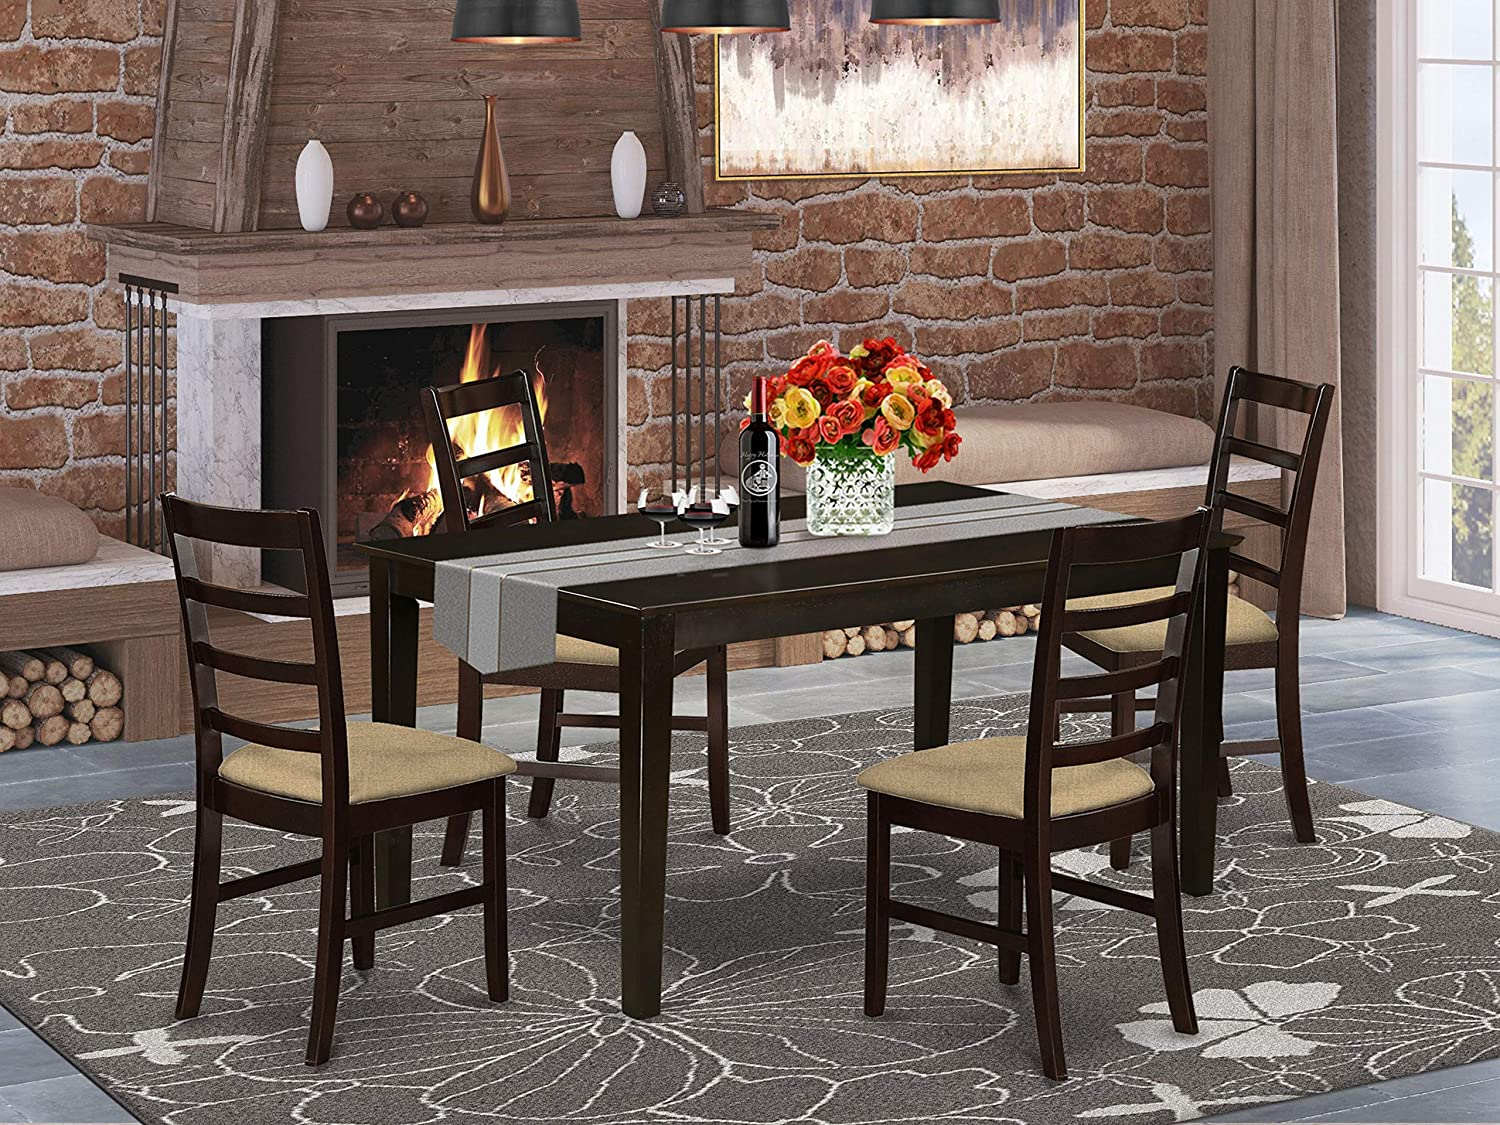 East West Furniture CAPF5-CAP-C Kitchen Set 5 Piece-Linen Fabric Dining Chairs Seat-Cappuccino Finish Wood Table and Frame